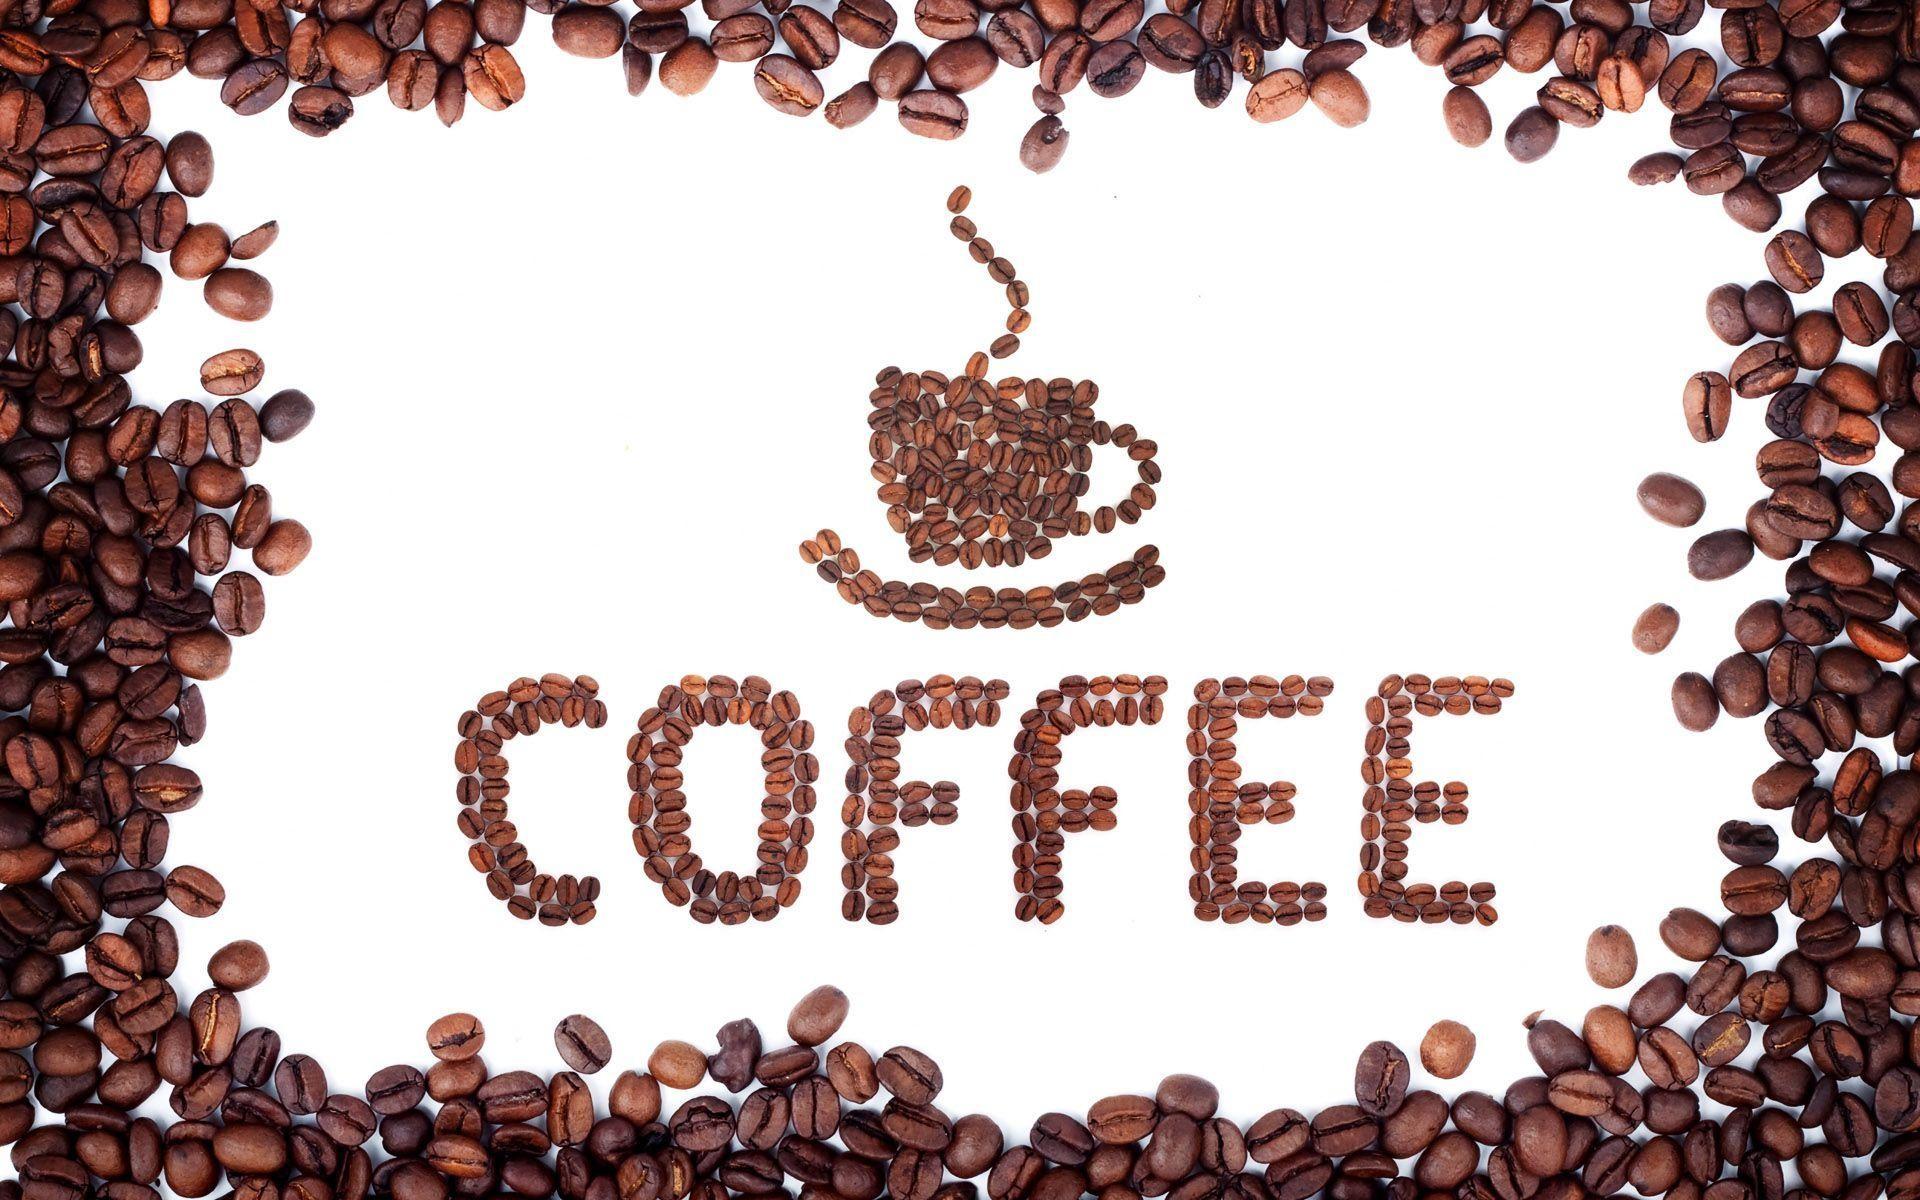 1920x1200 Free Coffee In Coffee Beans Wallpapers, Free Coffee In Coffee .